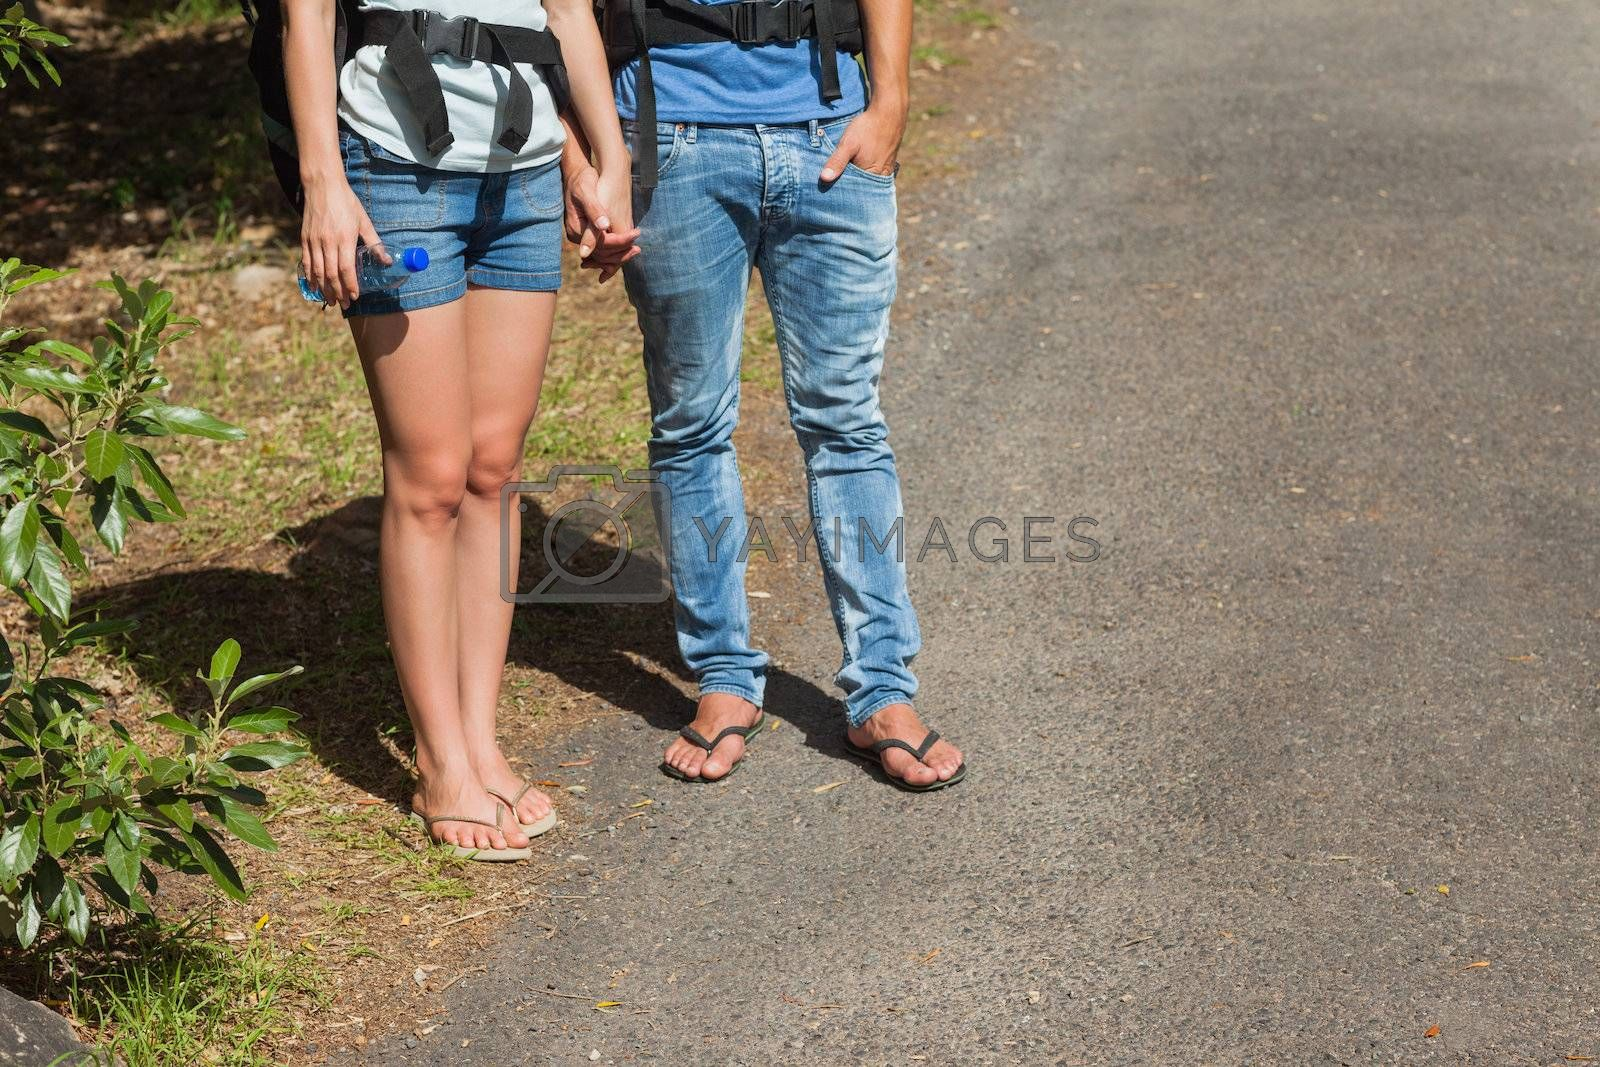 Legs of couple going for a trek together by Wavebreakmedia